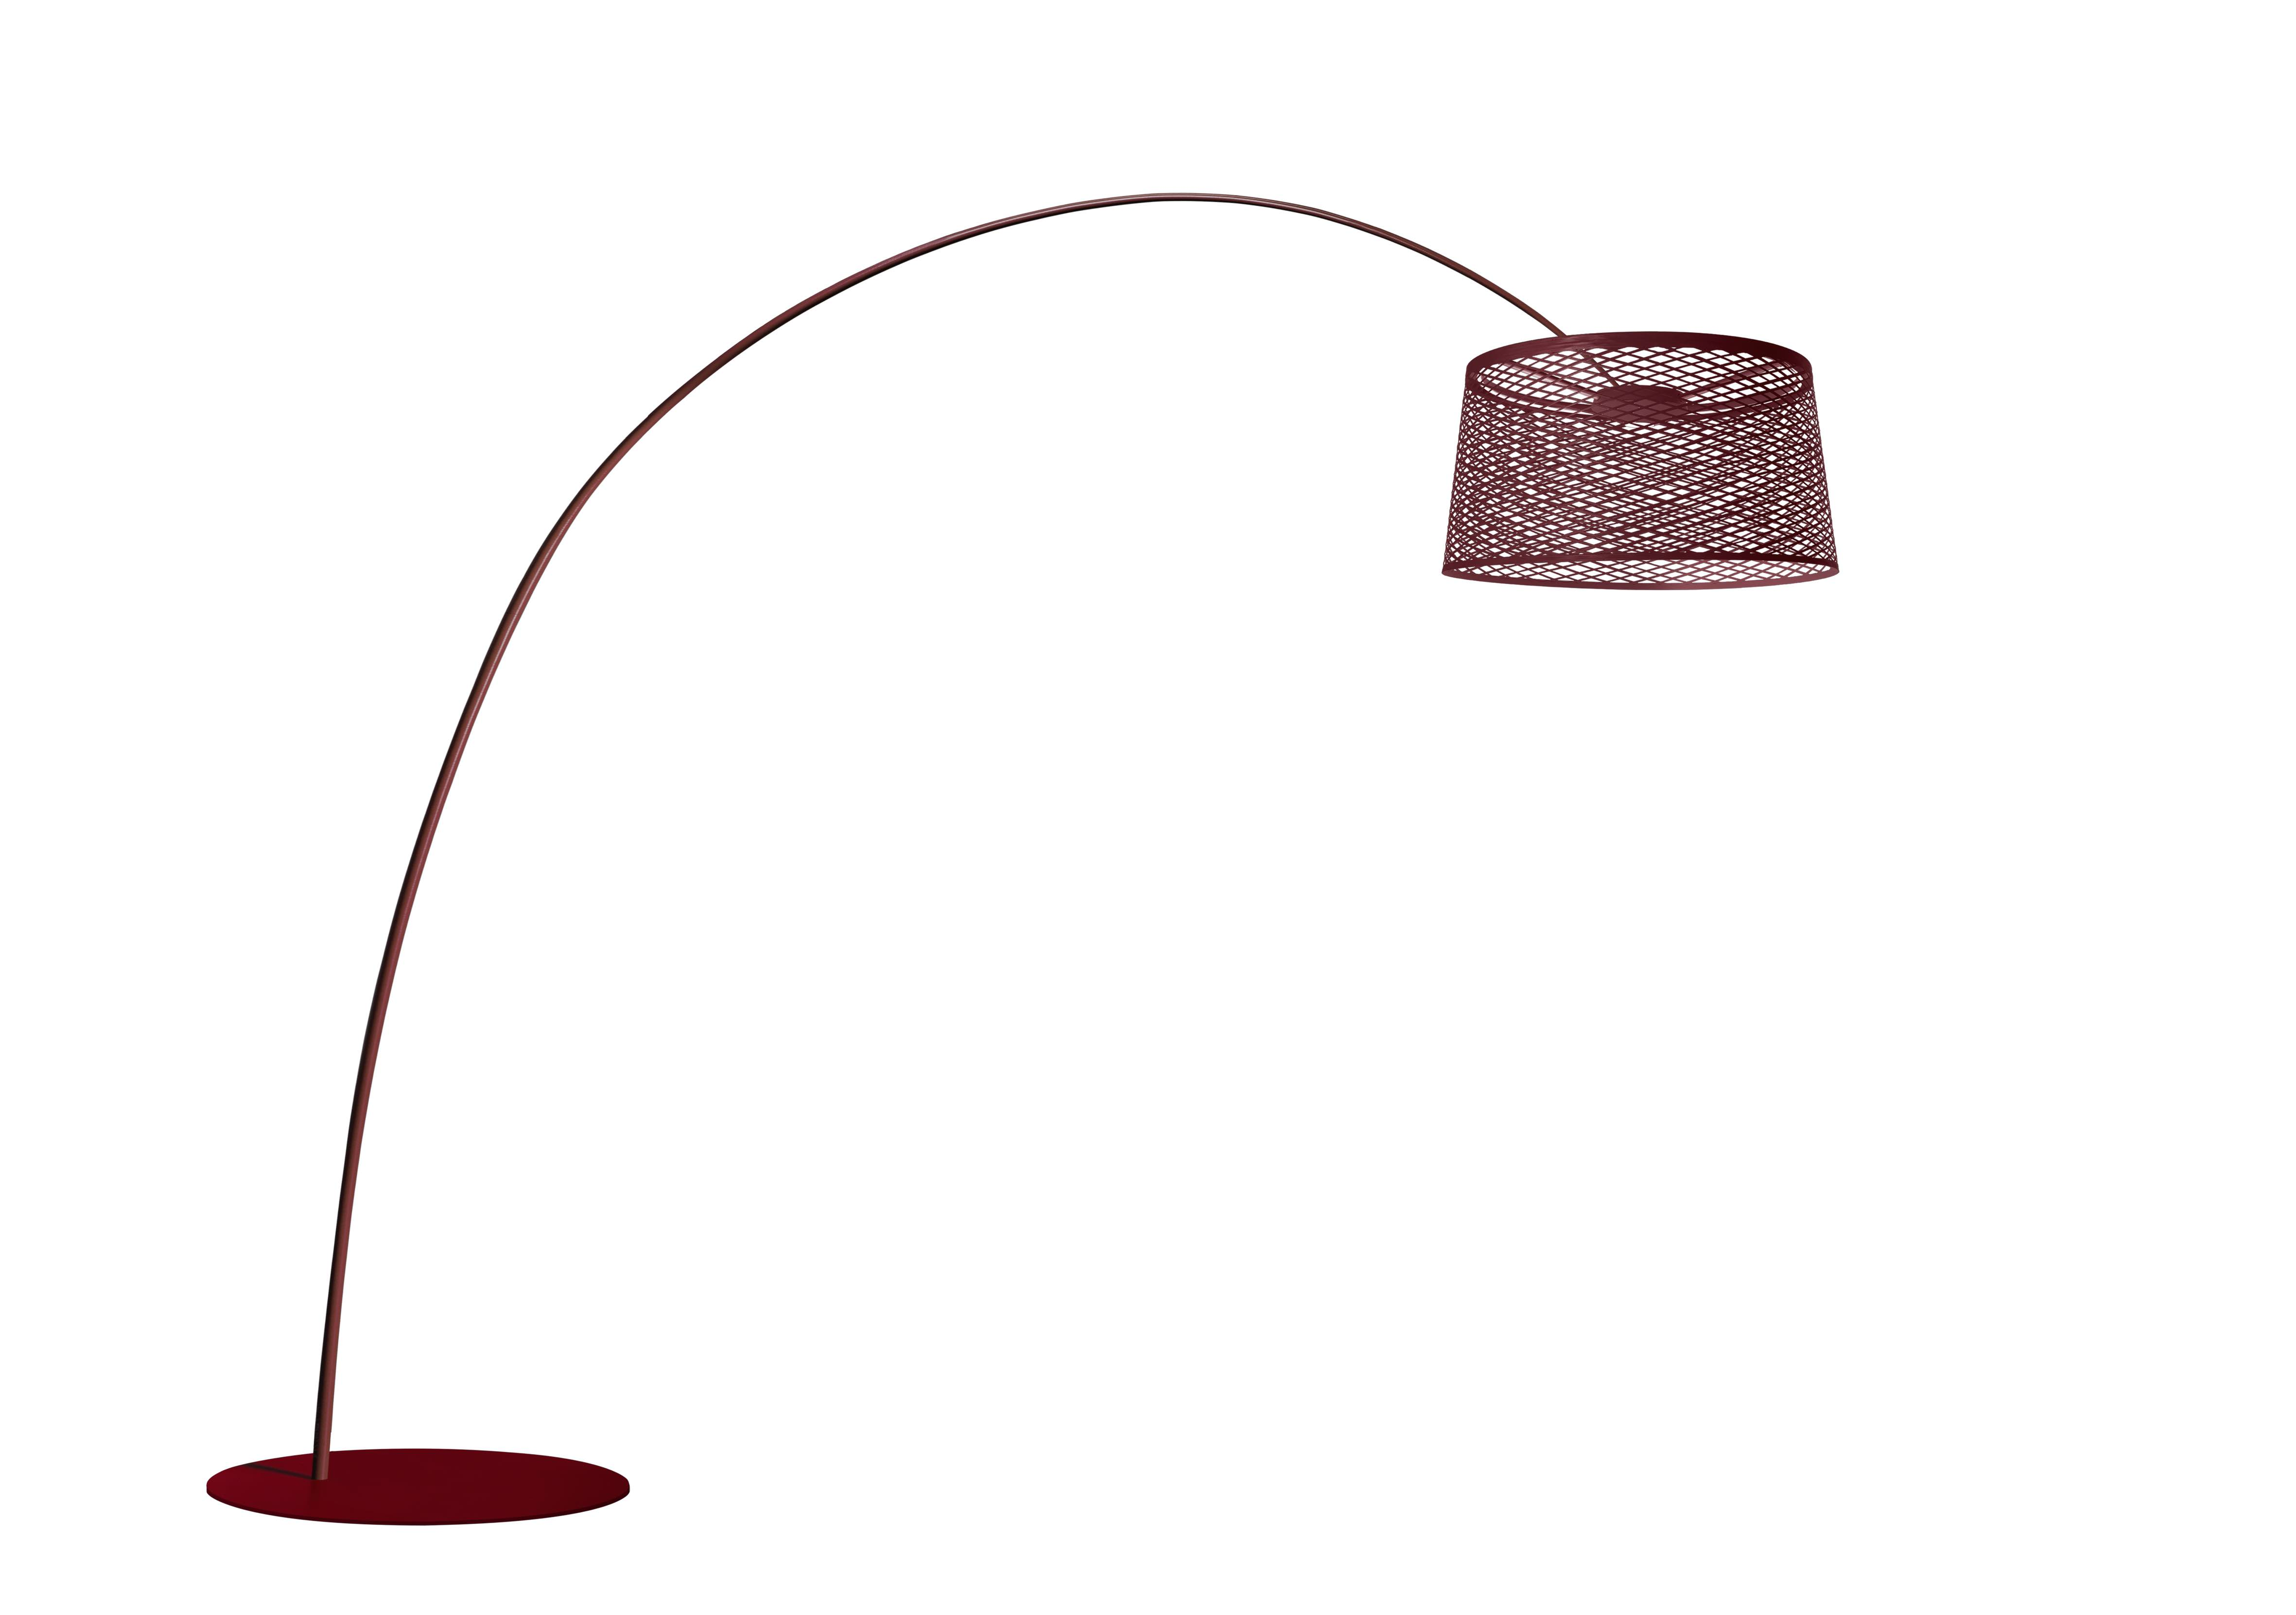 Foscarini Twice as Twiggy lamp